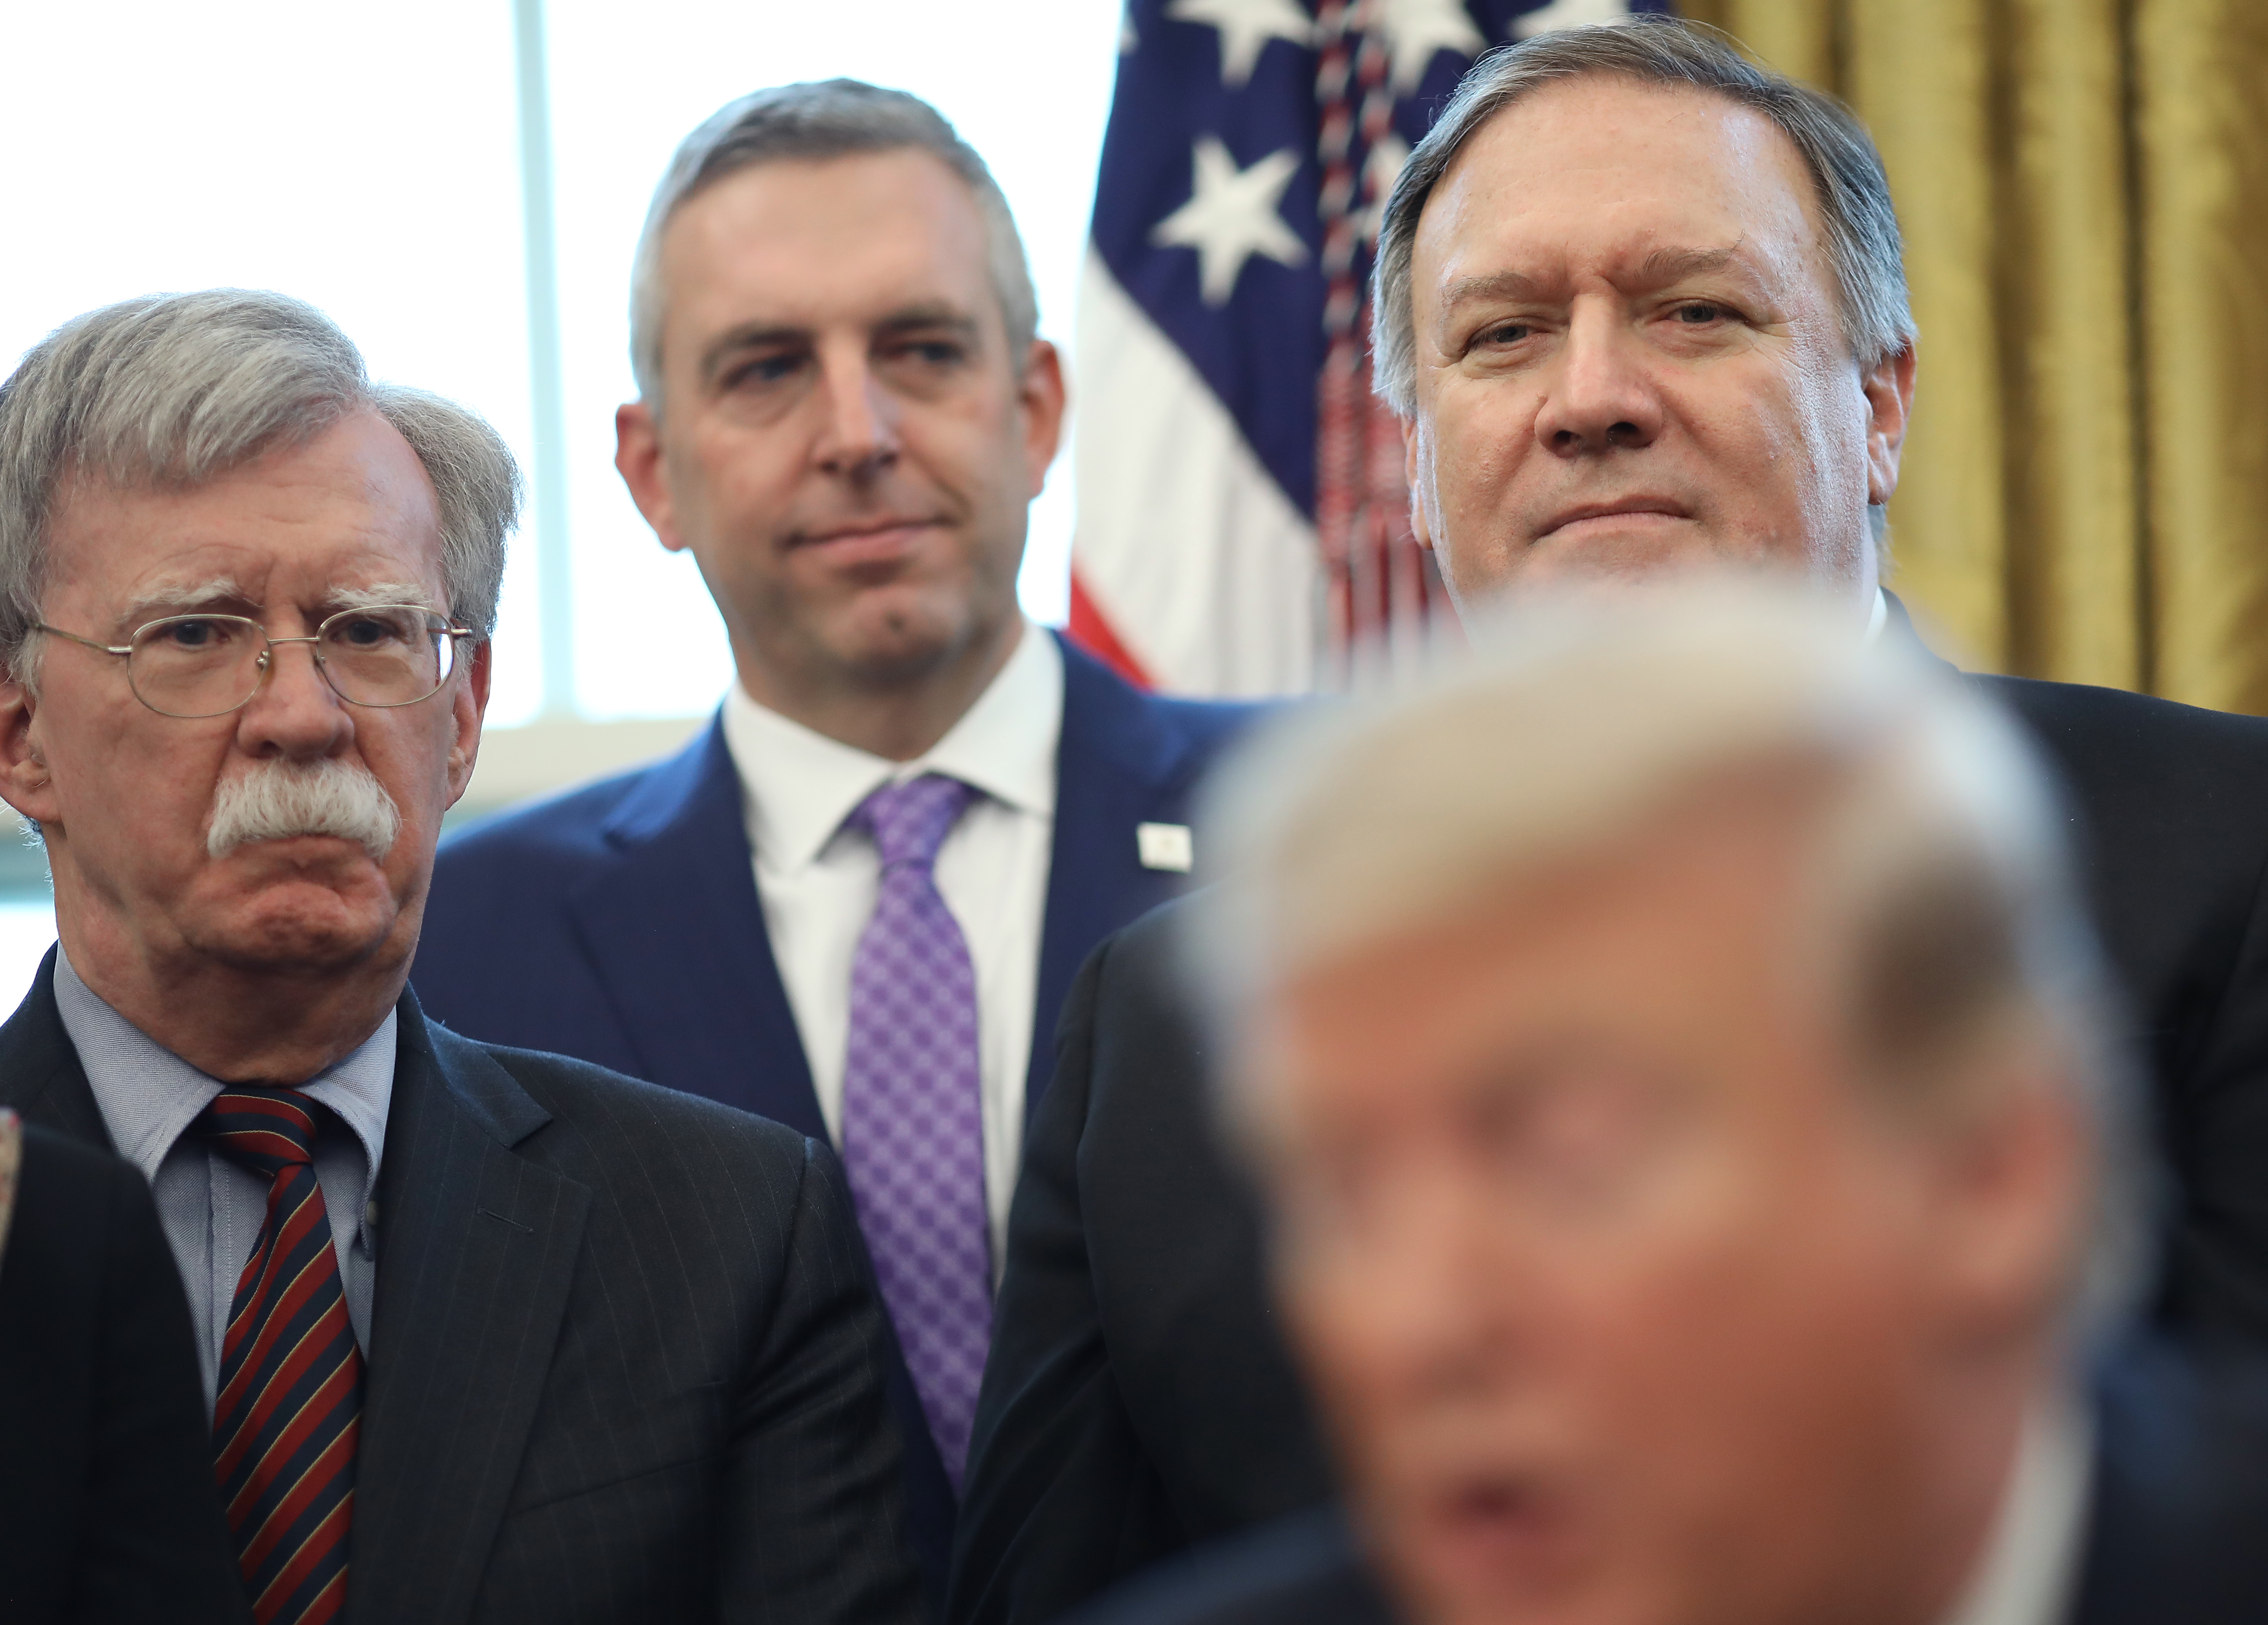 "WASHINGTON, DC - FEBRUARY 07: U.S. National Security Advisor John Bolton (L) and Secretary of State Mike Pompeo (R) listen as U.S. President Donald Trump speaks before signing a National Security Presidential Memorandum in the Oval Office February 7, 2019 in Washington, DC. The memorandum launches a Trump administration goal, the ""Women's Global Development and Prosperity"" Initiative, an initiative led by his daughter, Ivanka Trump. (Photo by Win McNamee/Getty Images)"